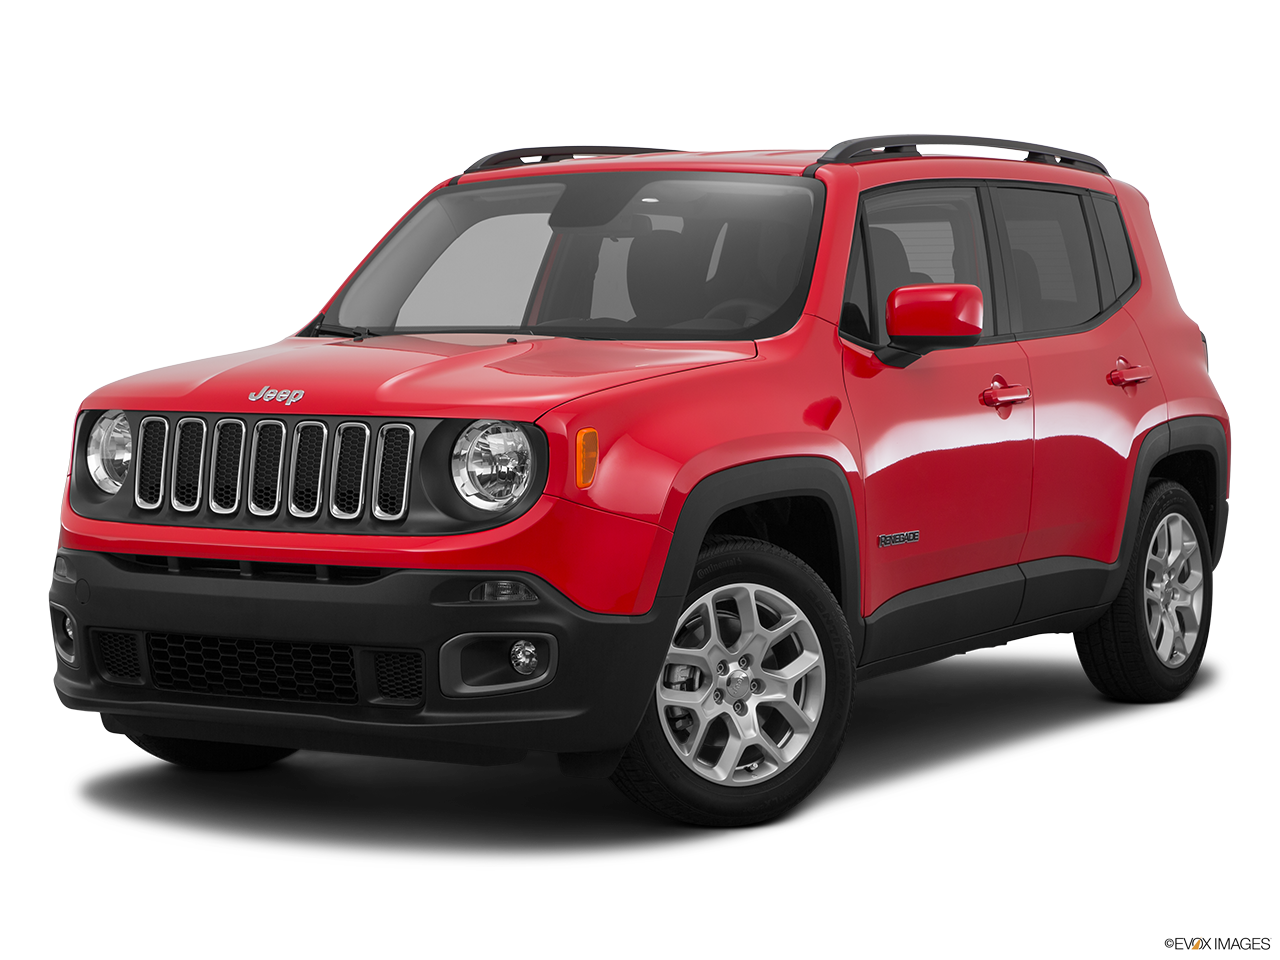 Test Drive A 2015 Jeep Renegade at Huntington Beach Chrysler Dodge Jeep Ram  in Orange County